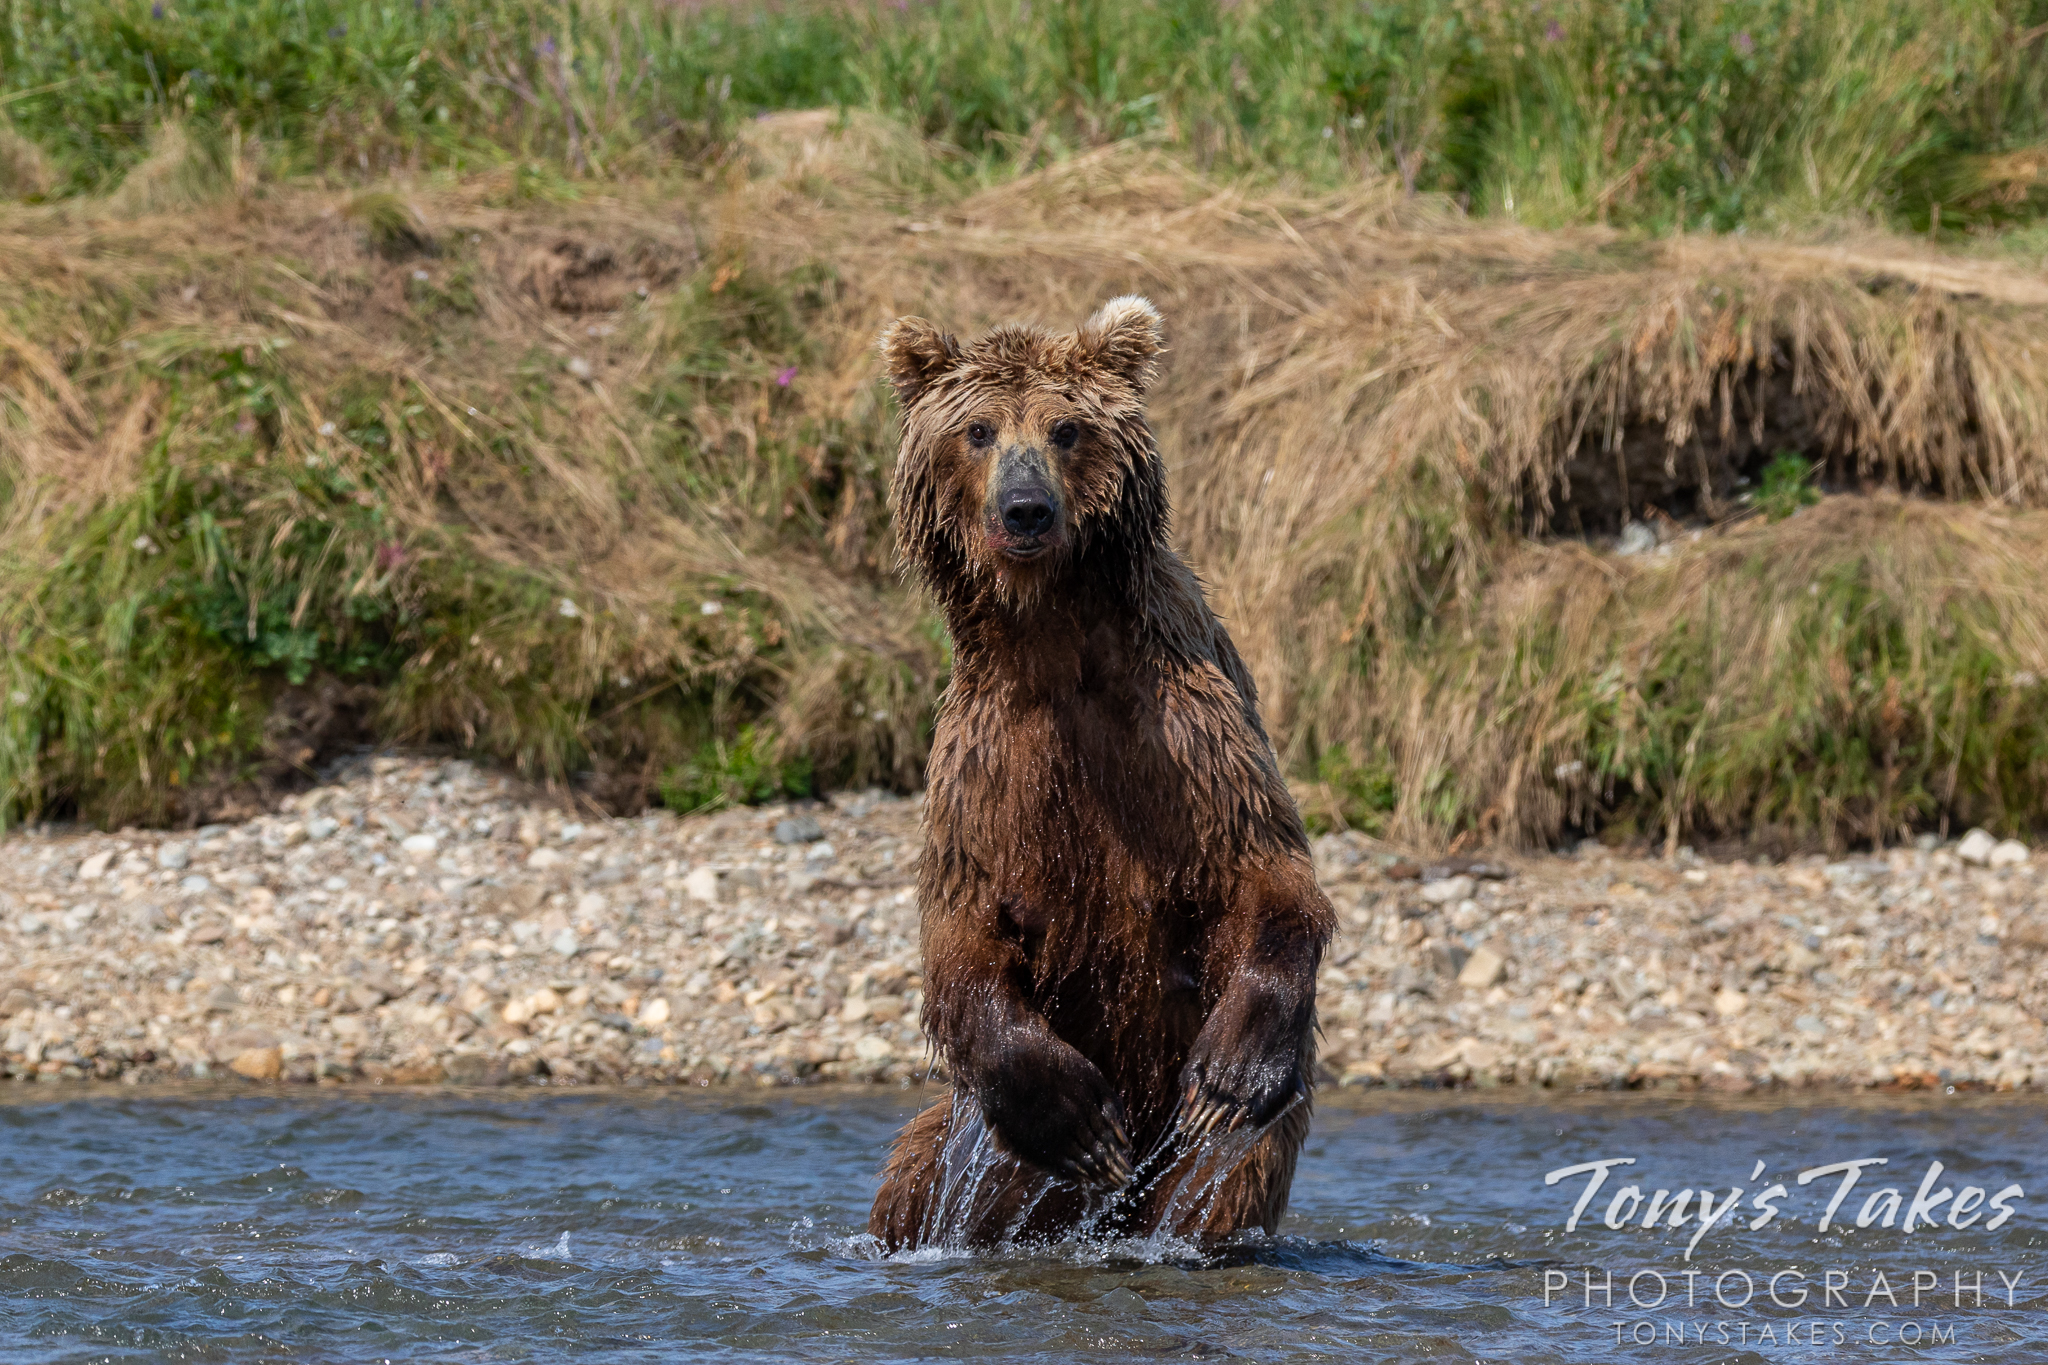 A brown bear stands tall in Moraine Creek on the lookout for salmon. (© Tony's Takes)